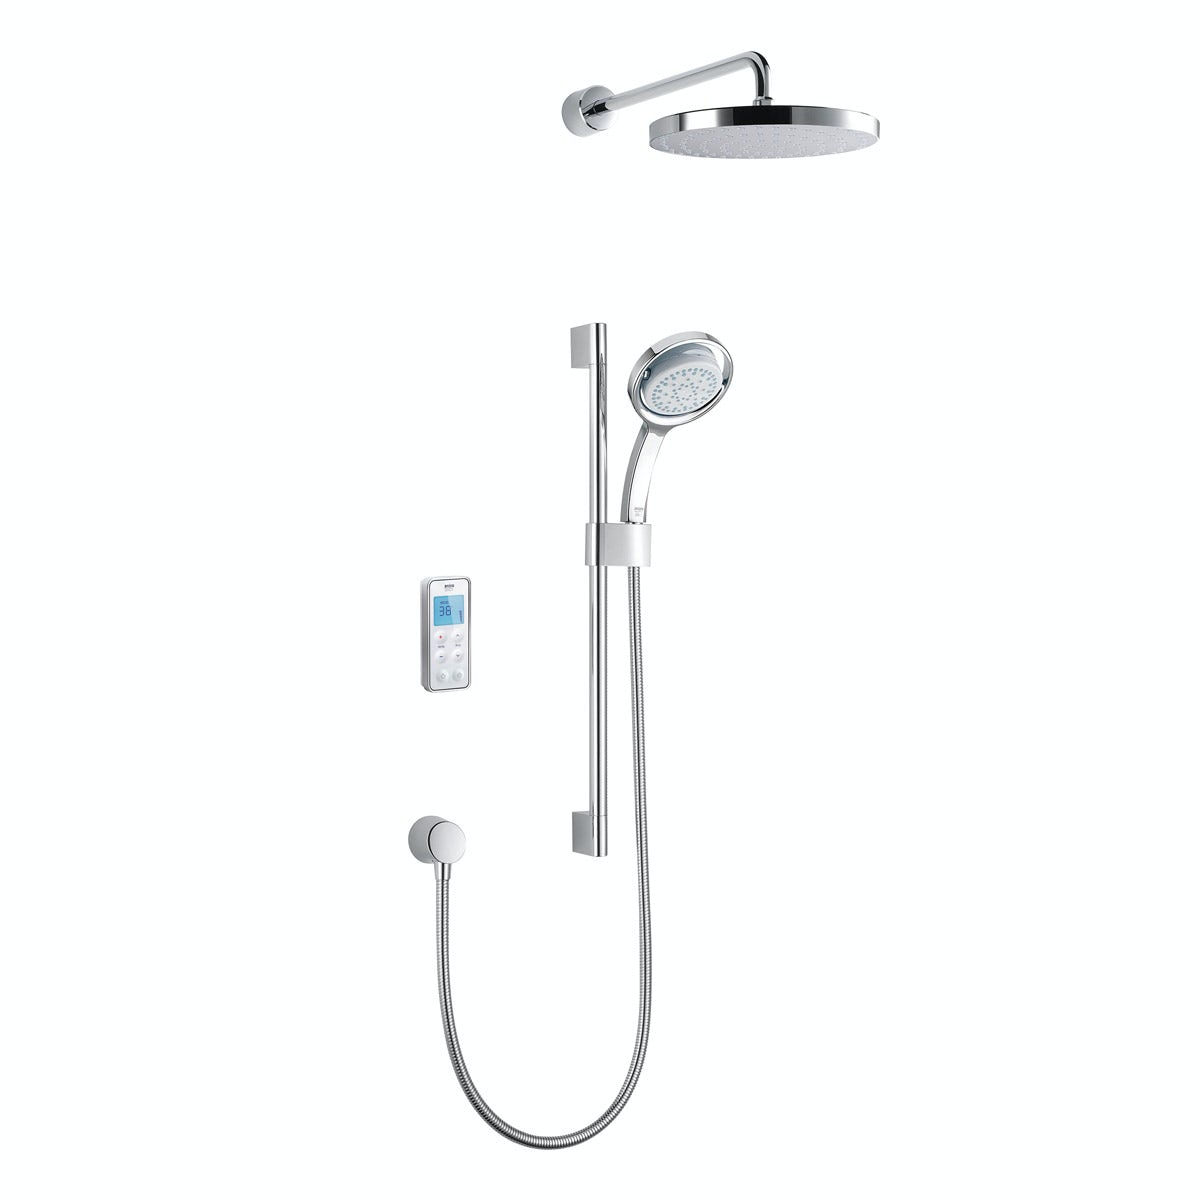 Mira Vision dual rear fed digital shower pumped